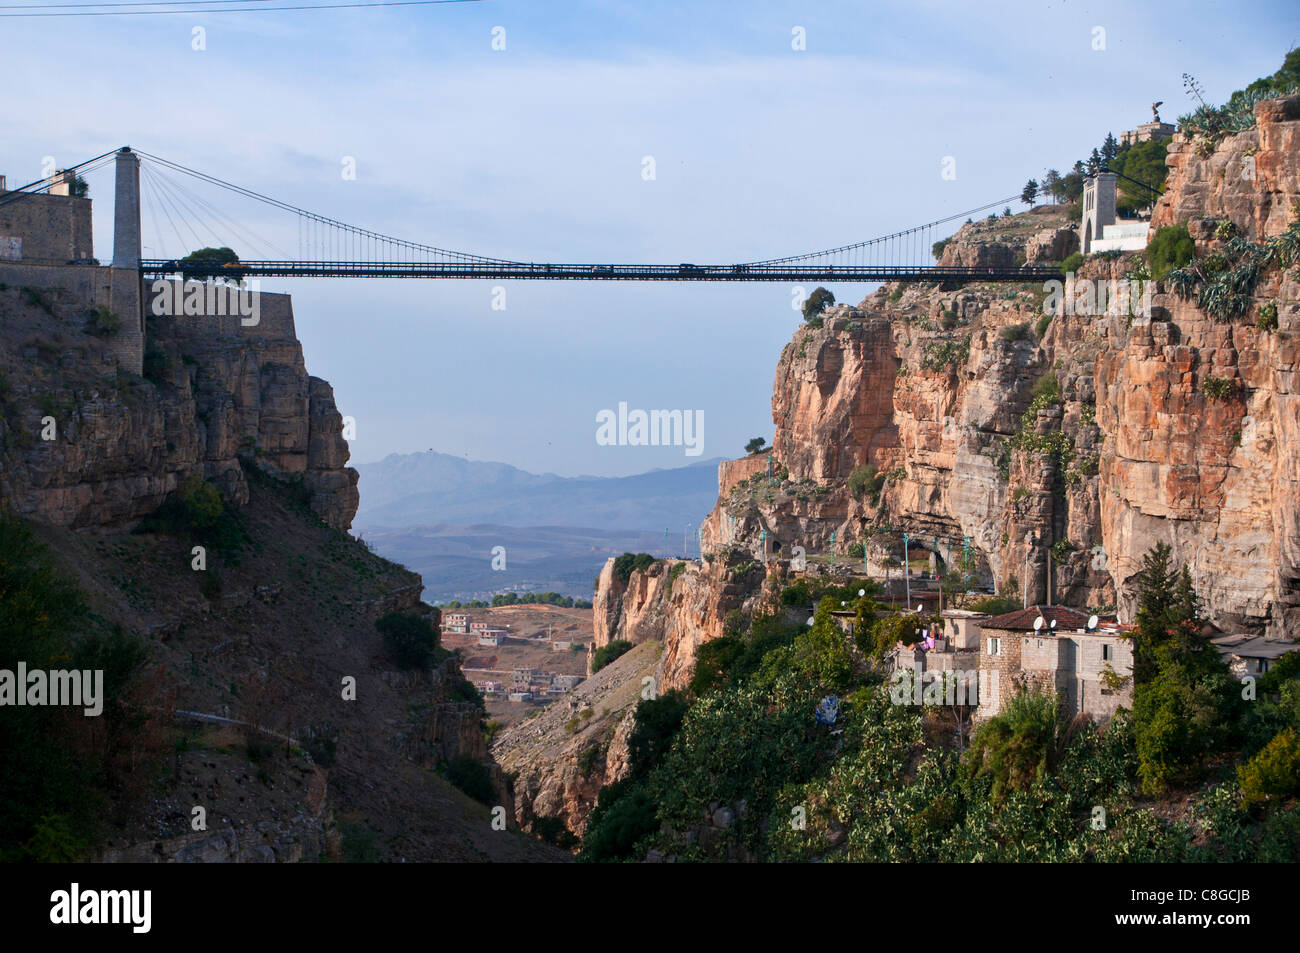 Sidi m'Cid bridge over a huge canyon, Constantine, Eastern Algeria, North Africa Stock Photo